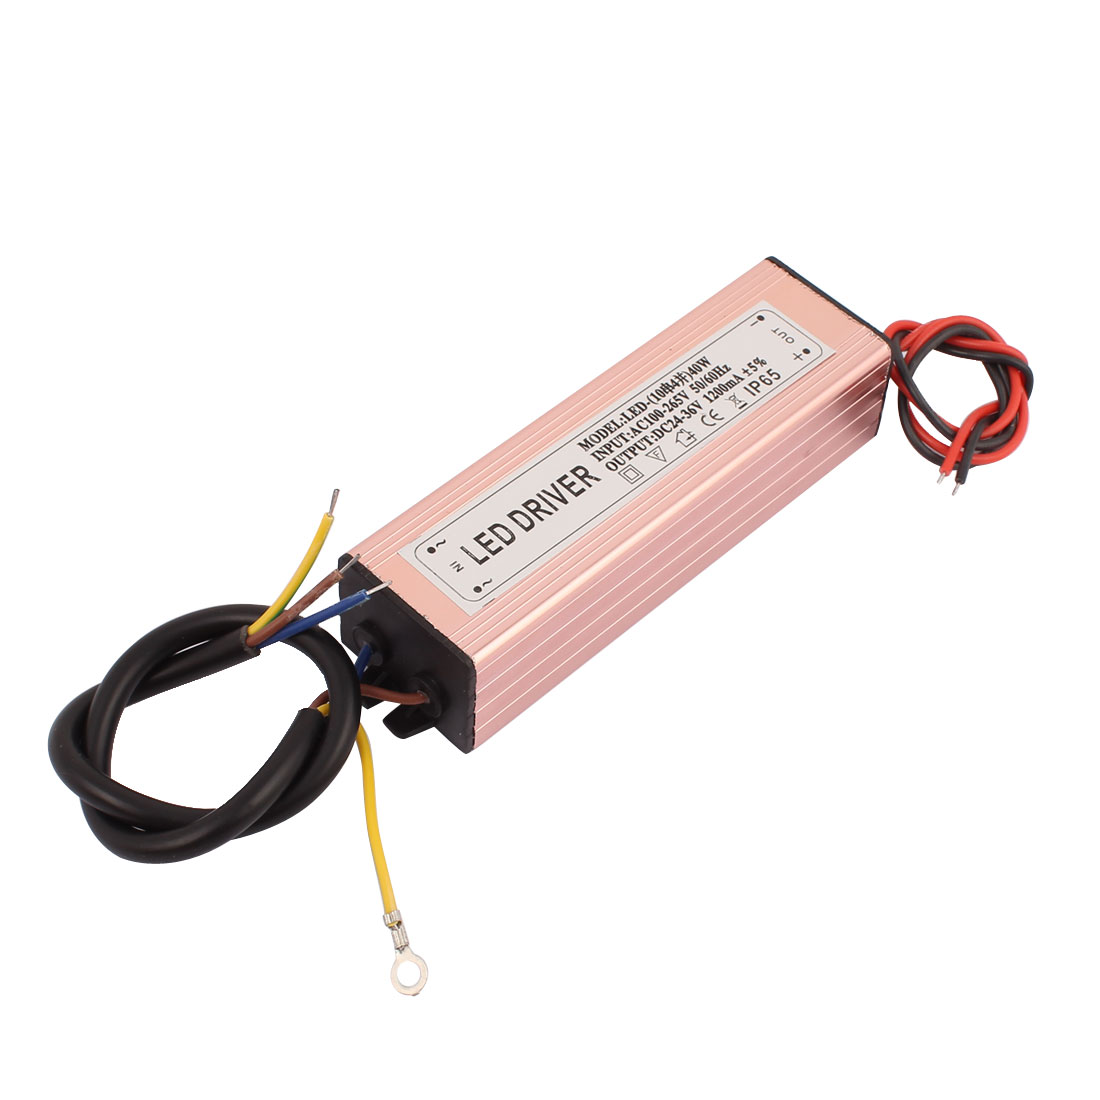 DC 24-36V Output 1200mA LED Driver Power Supply for 40W LED Strip Light